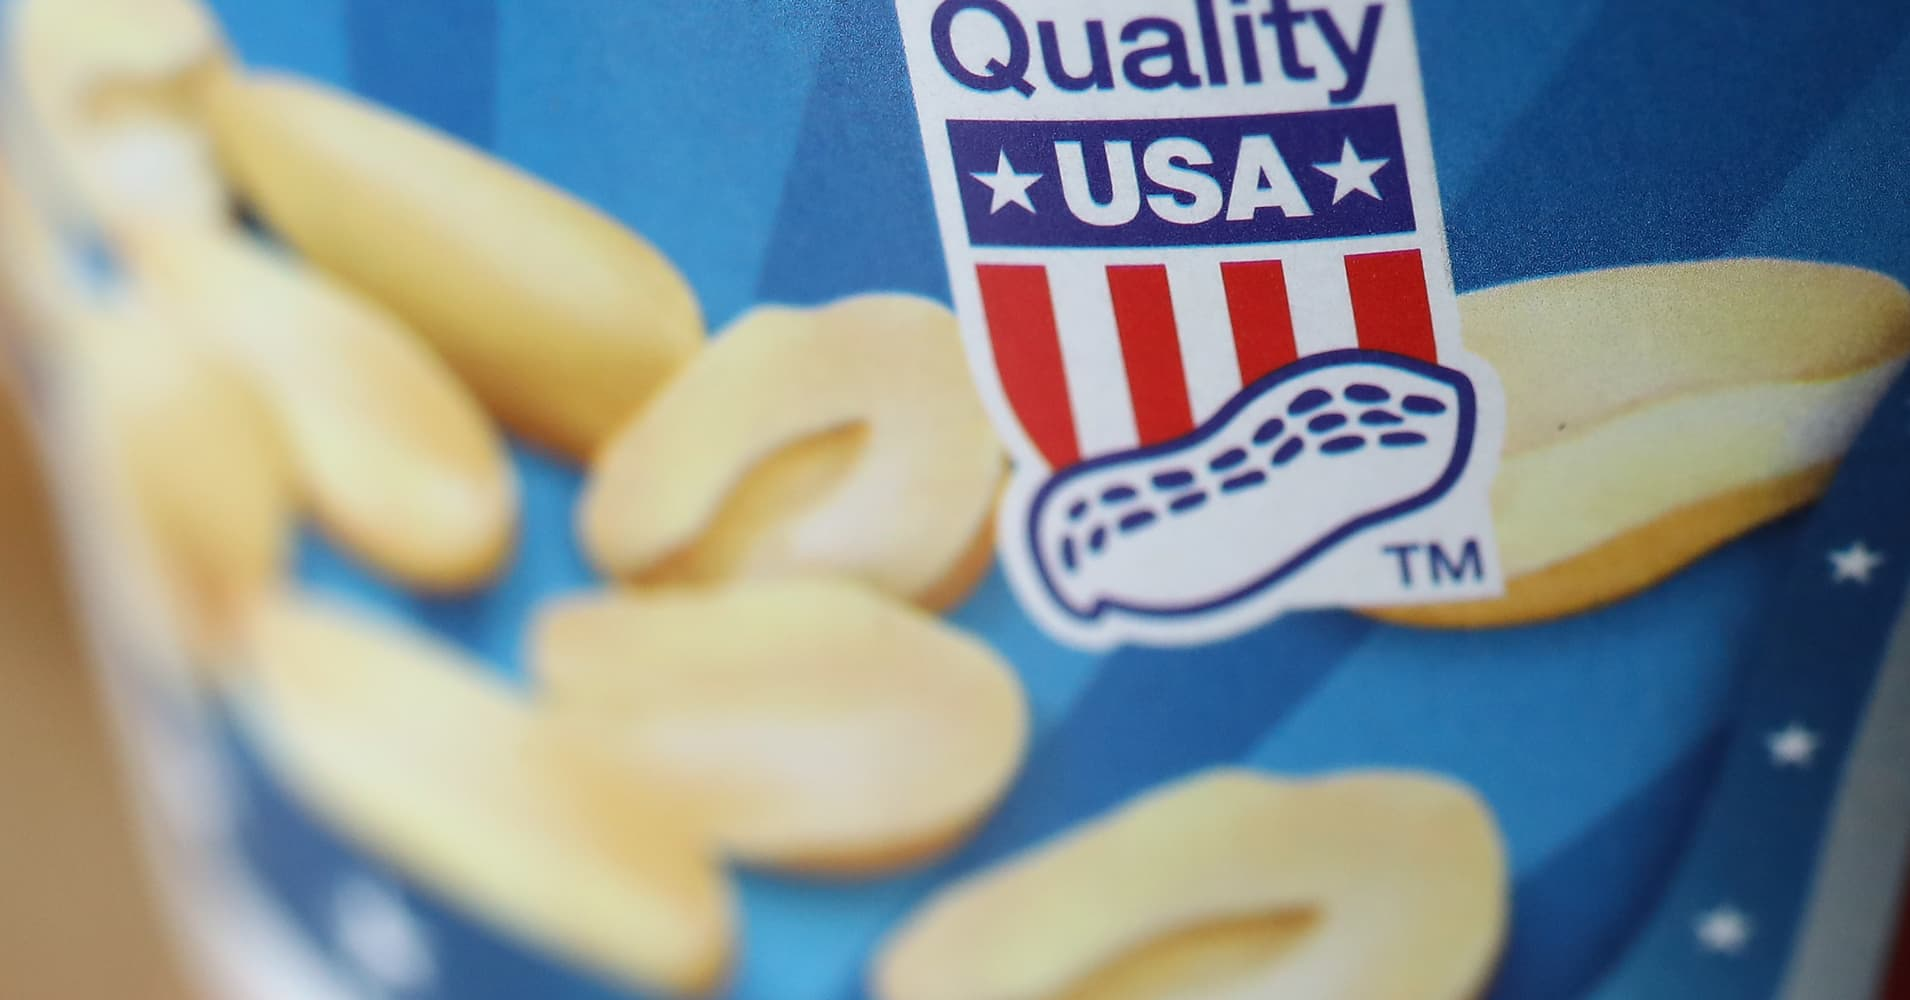 US could face new EU tariffs from July on products like peanut butter